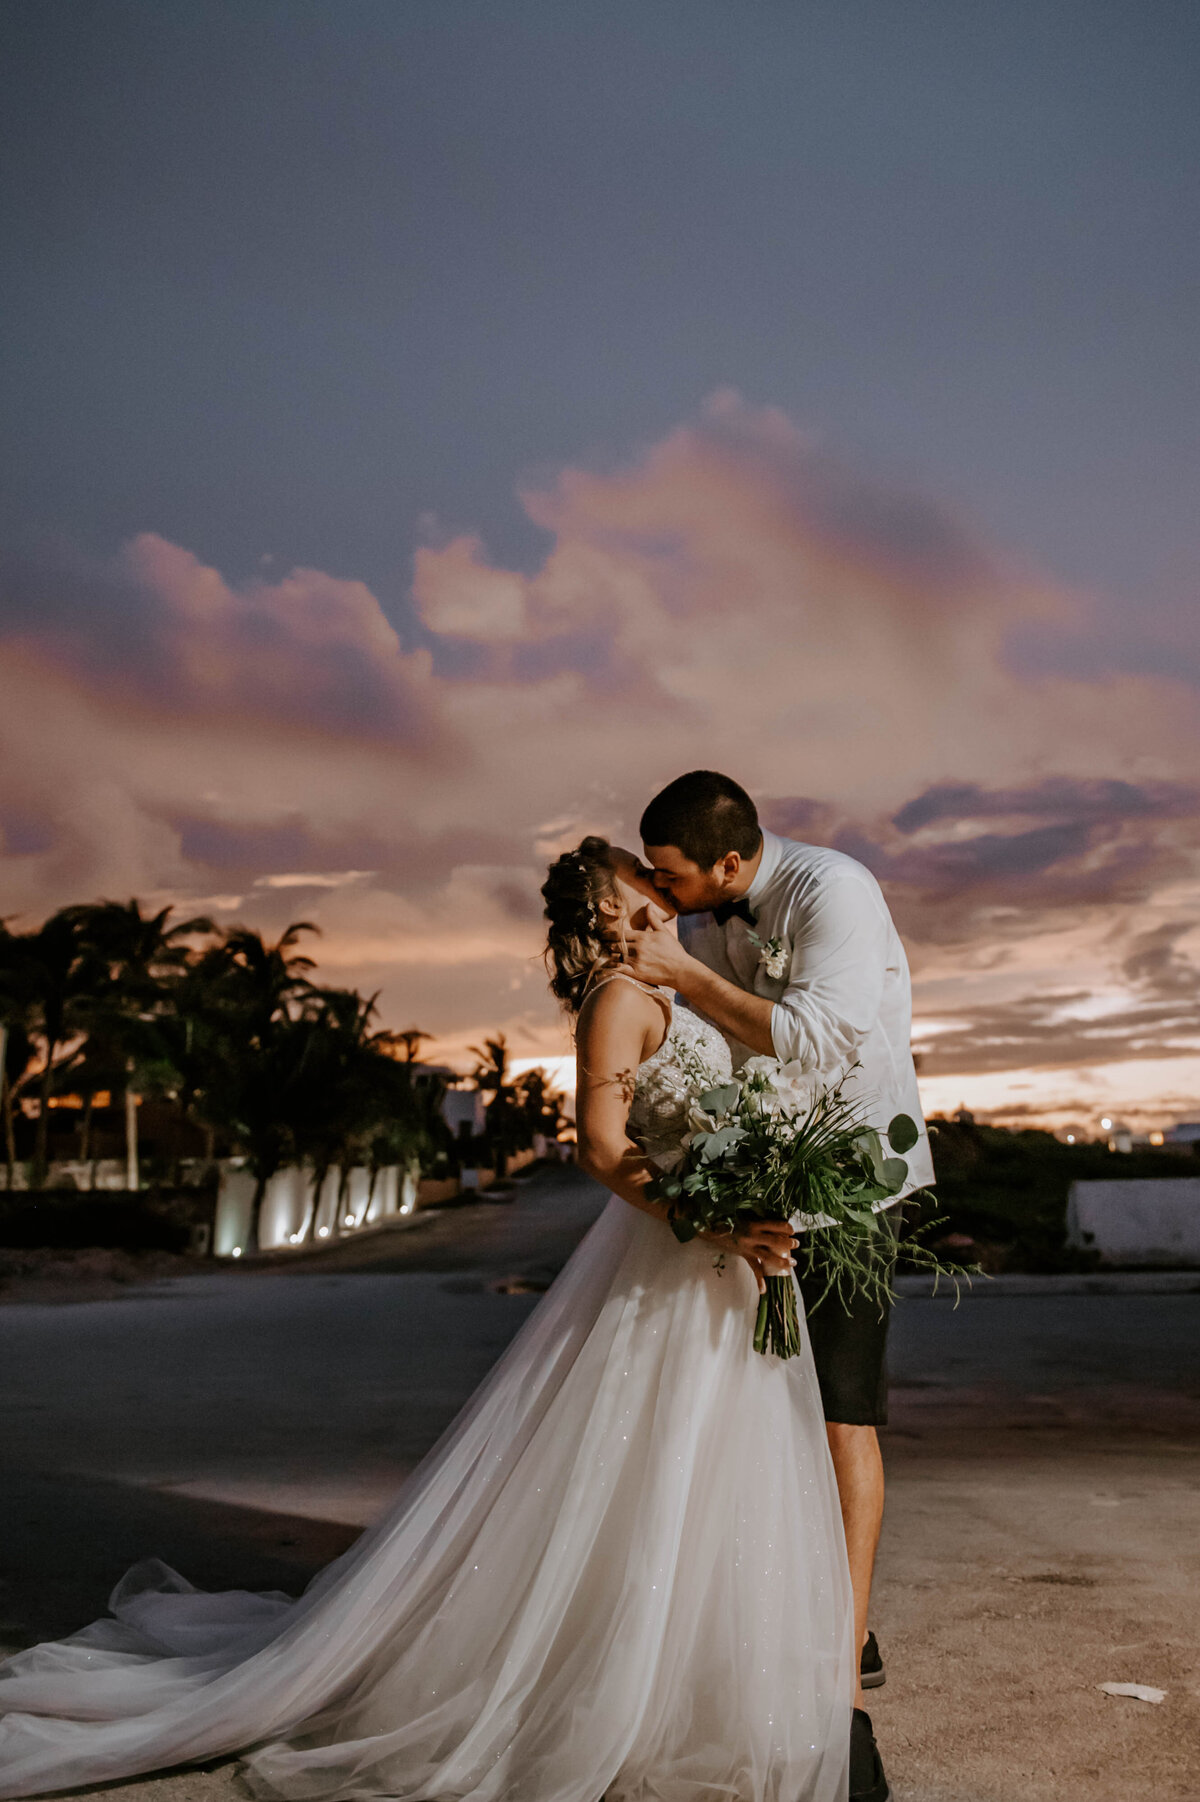 isla-mujeres-wedding-photographer-guthrie-zama-mexico-tulum-cancun-beach-destination-1570